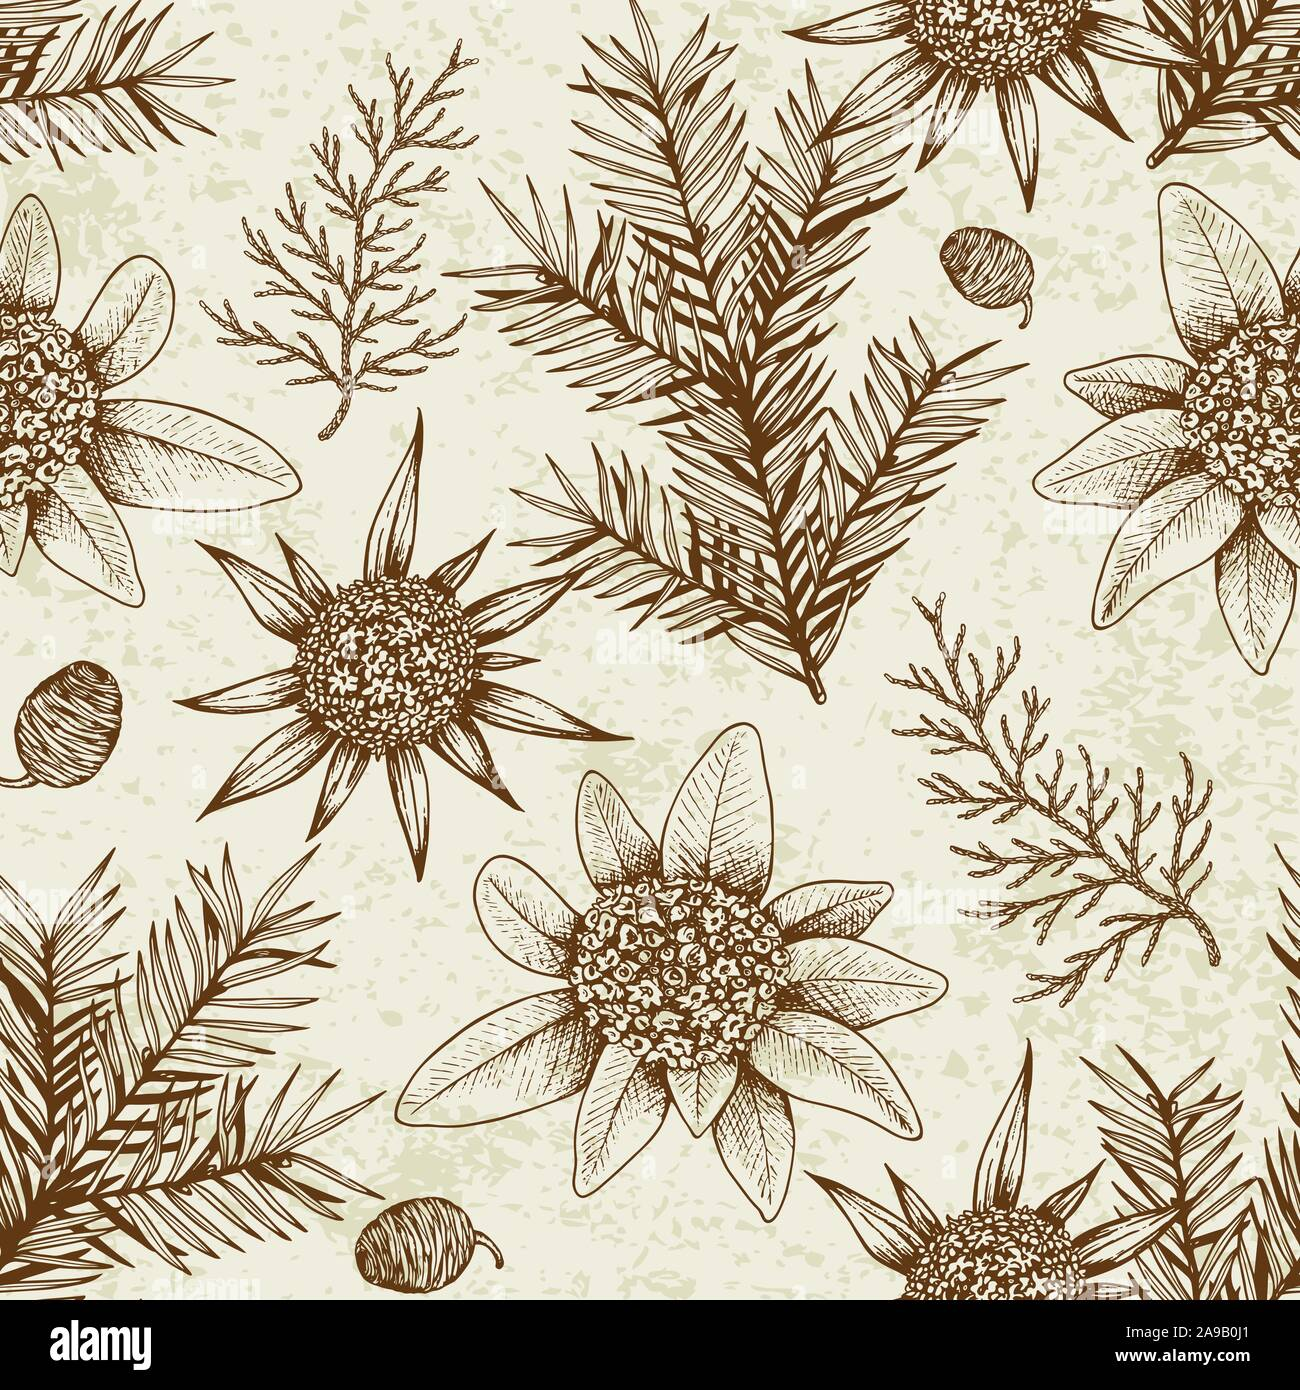 Vintage Winter Seamless Pattern With Evergreen Plants And Flowers Decorative Background For Christmas And New Year Hand Drawn Vector Pattern Stock Vector Image Art Alamy